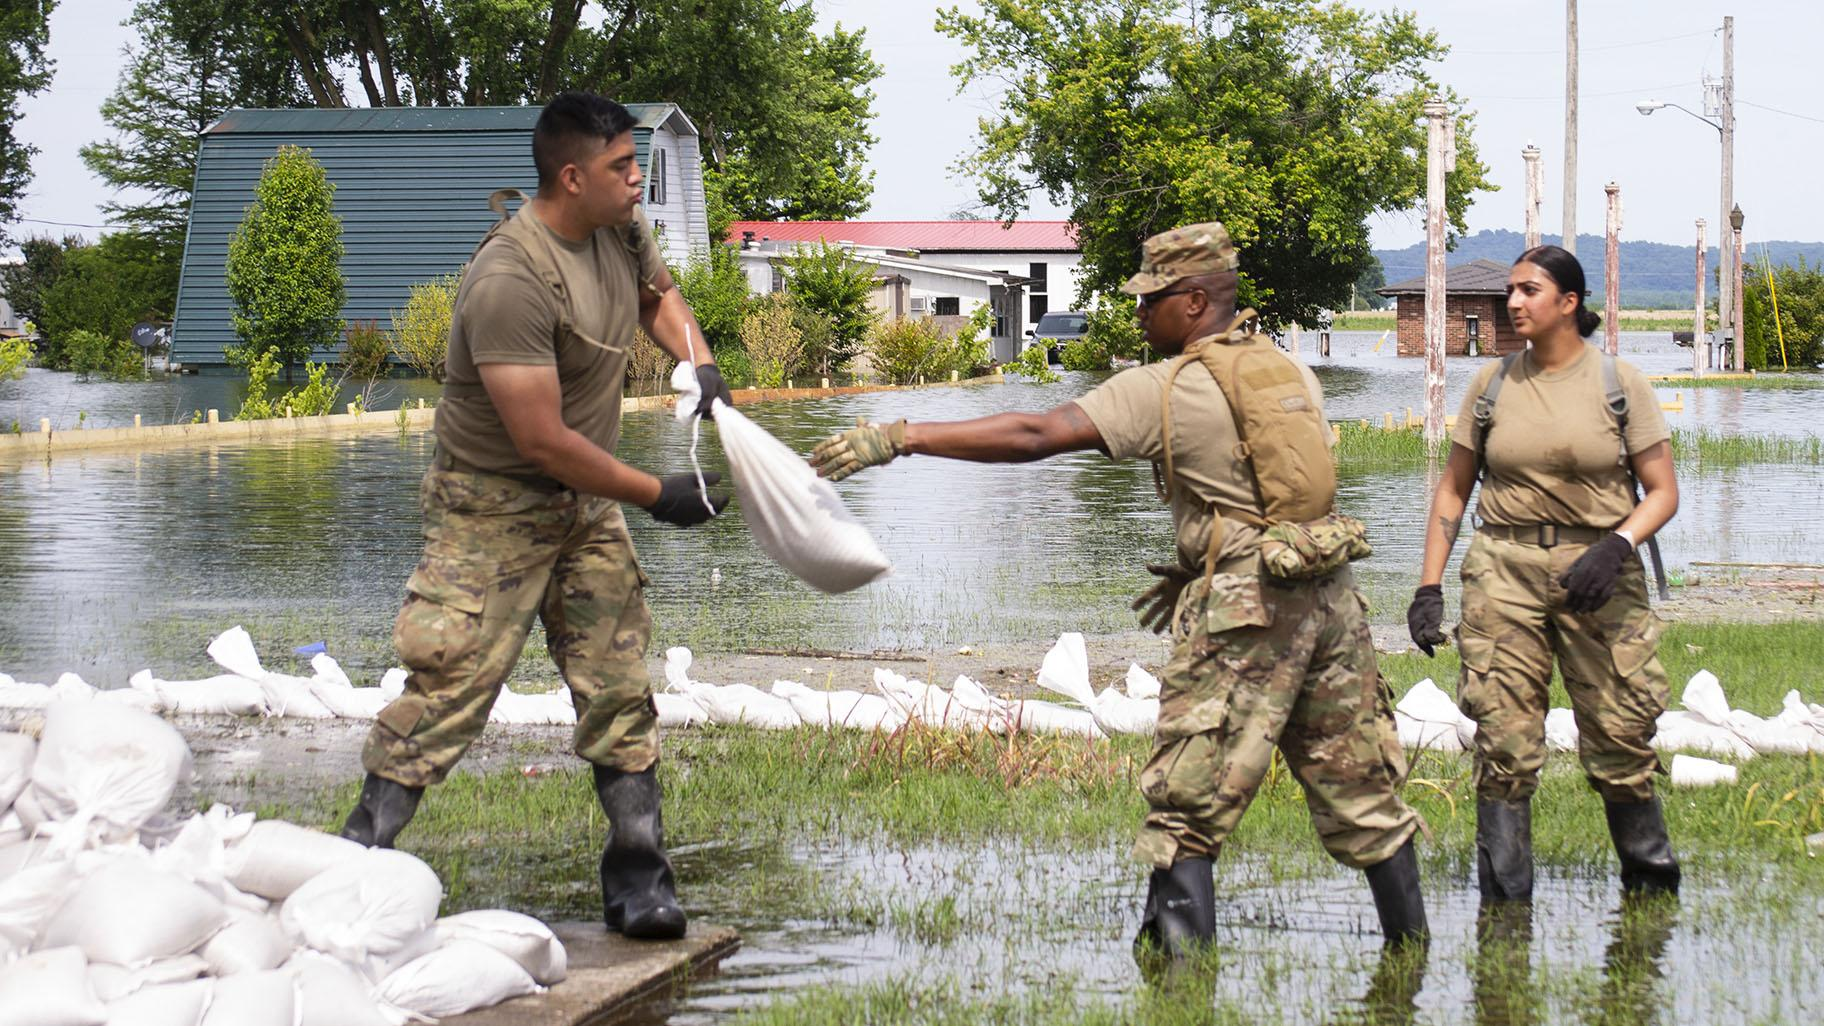 Illinois National Guard soldiers move sandbags through flood waters at East Cape Girardeau, Illinois, on June 12, 2019, as they construct a sandbag levee to control flooding in the community. (Barbara Wilson / Illinois National Guard)